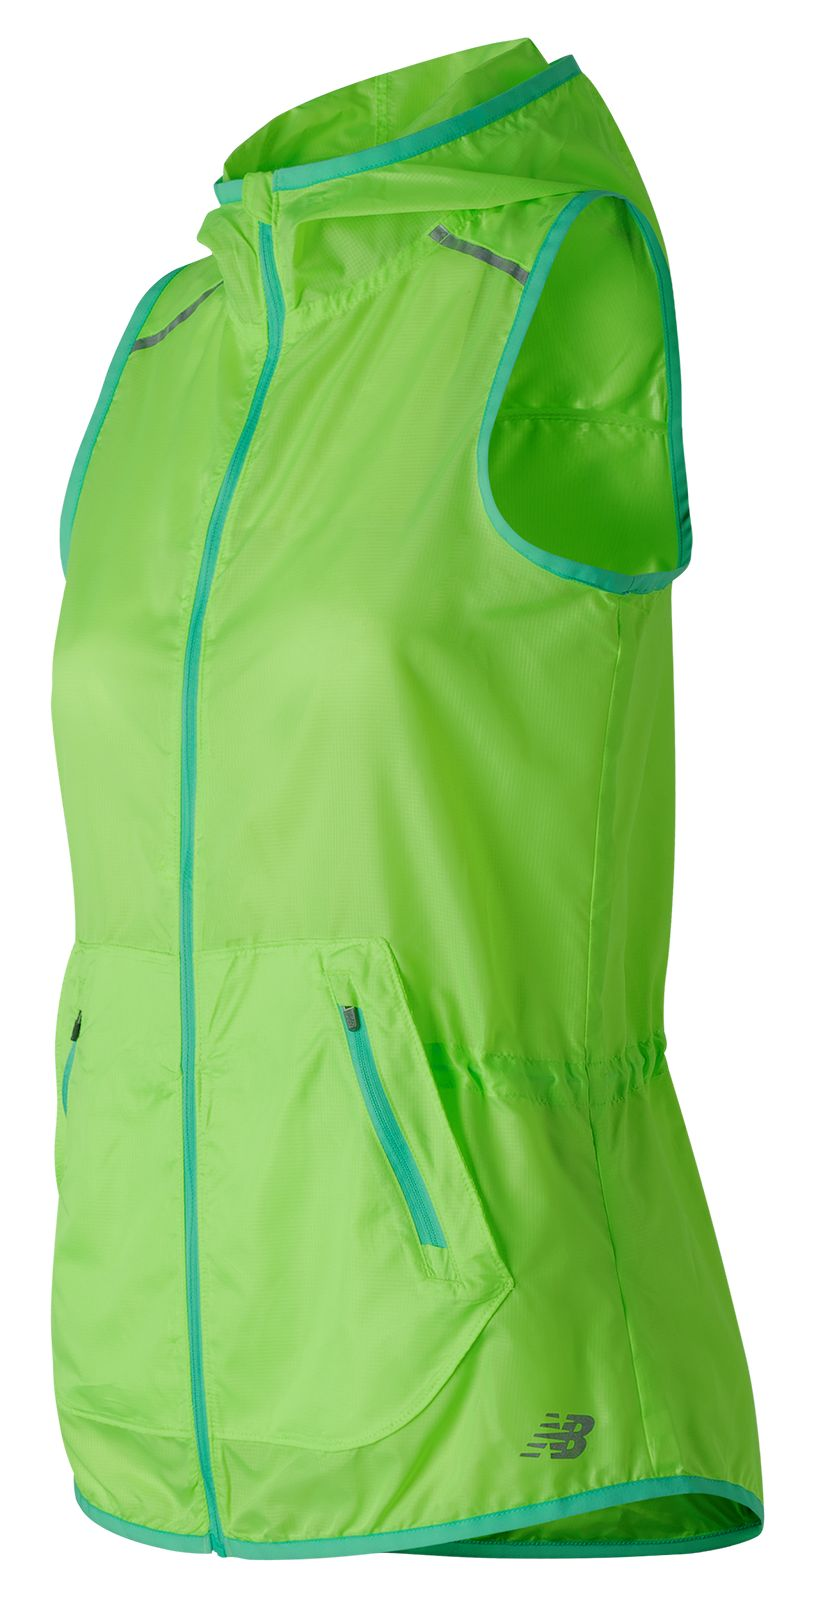 New Balance : Windcheater Vest : Women's Performance : WV71101LIG